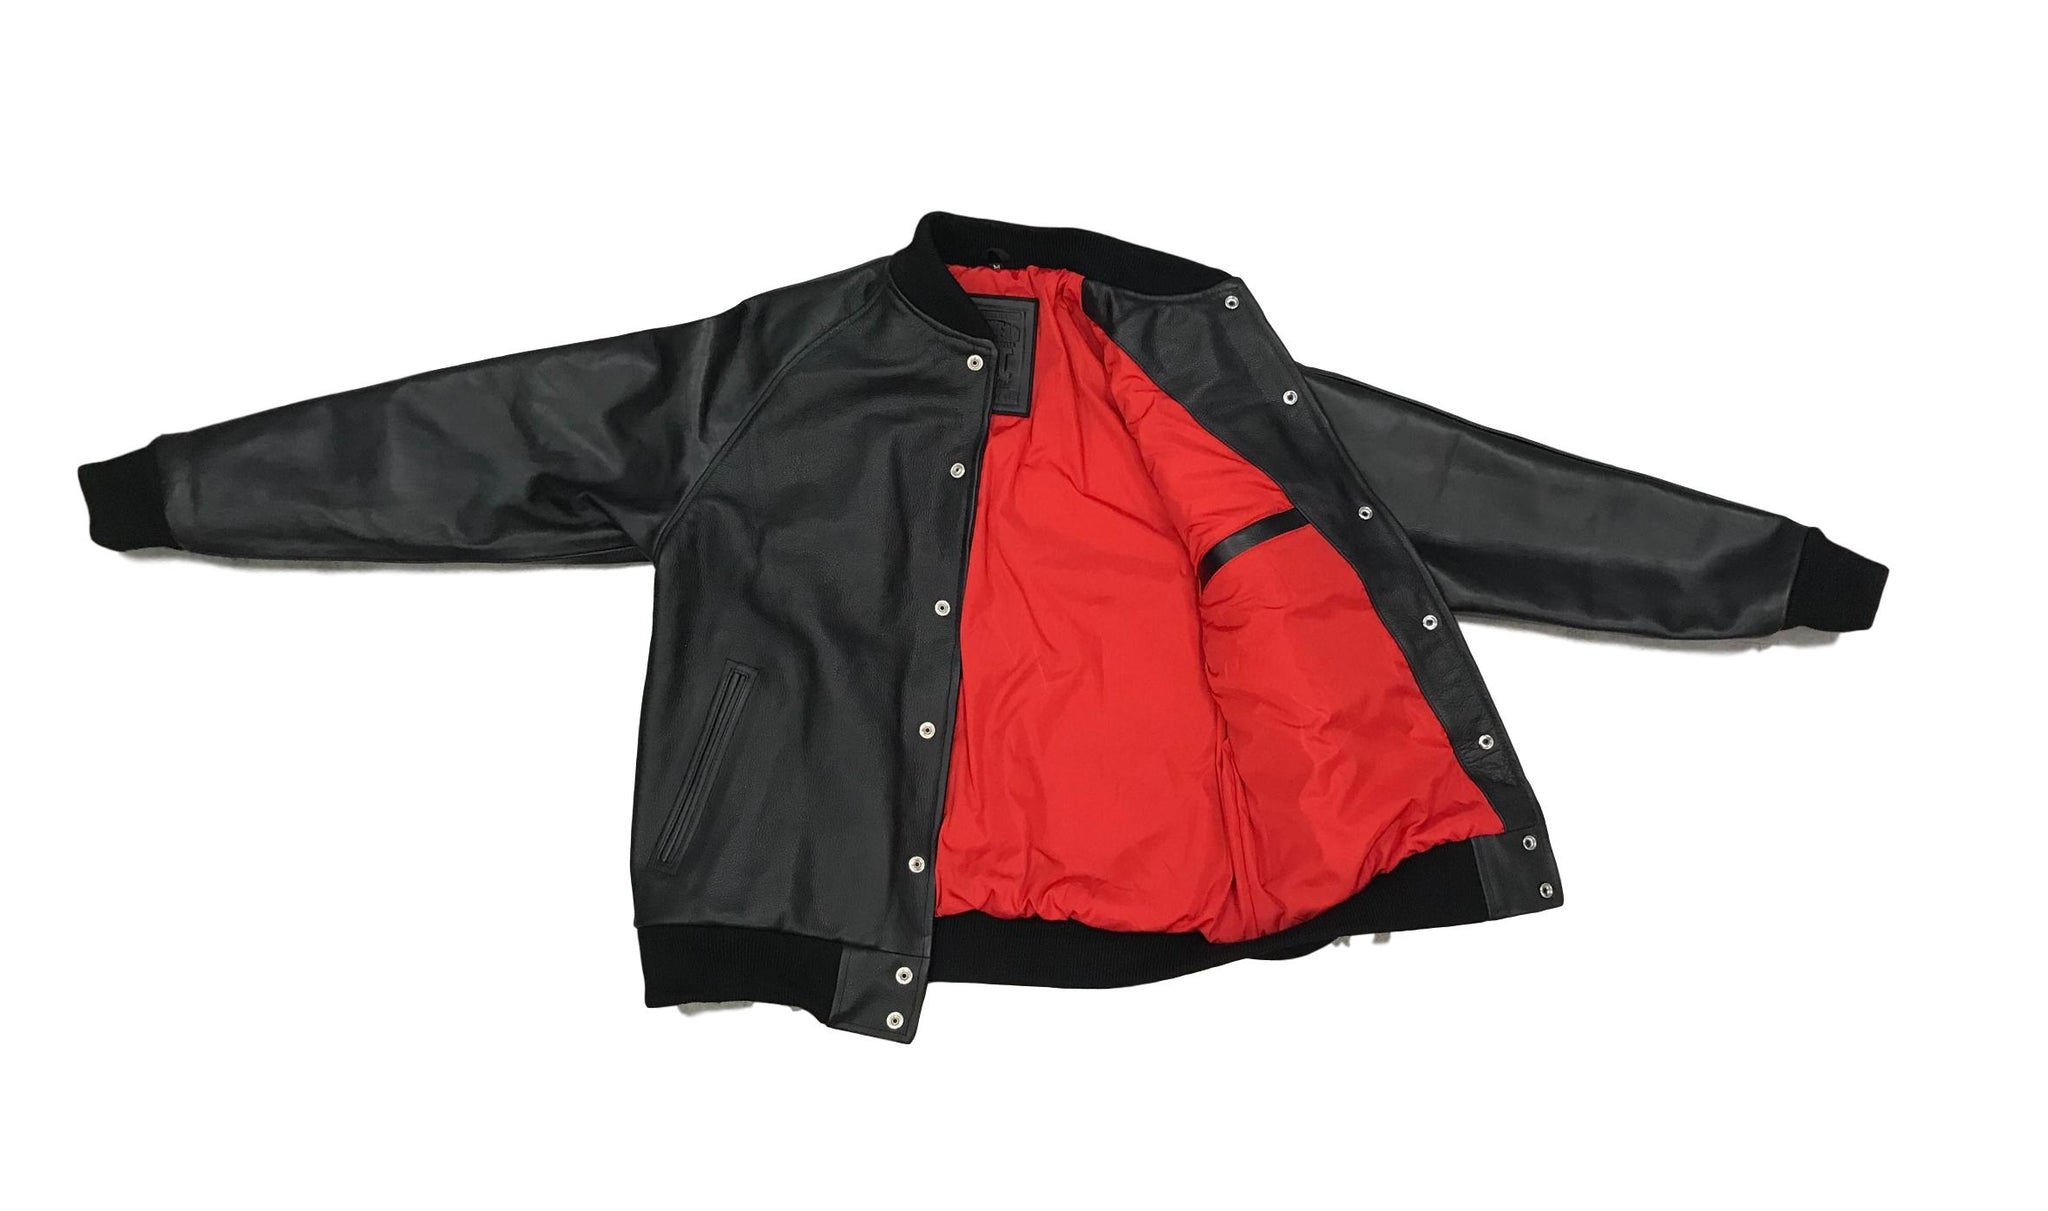 SNKR HEAD Cut & Sew All Leather Baseball Jacket